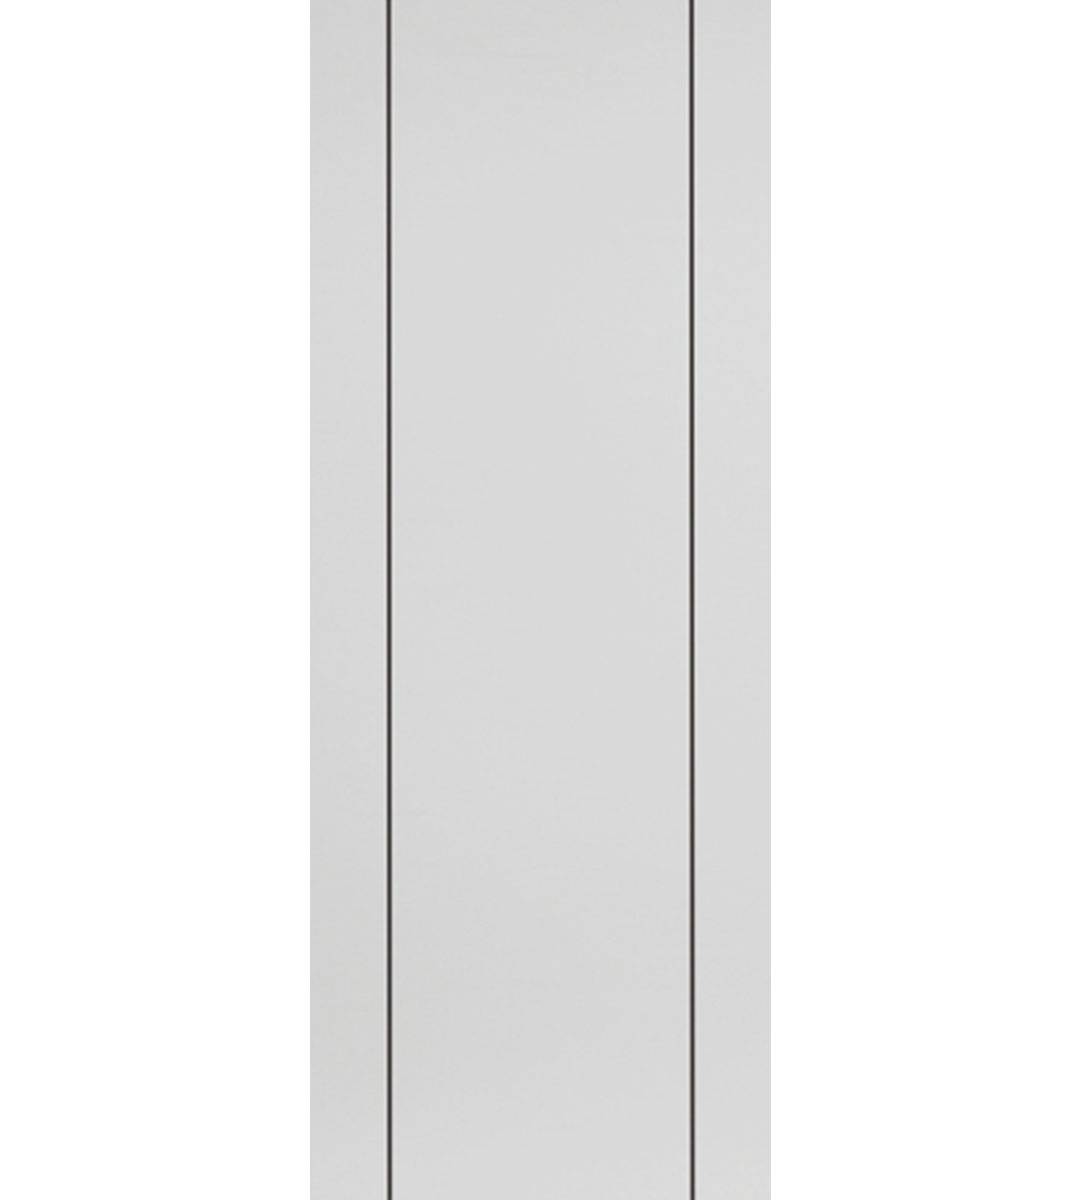 eco parelo white internal door